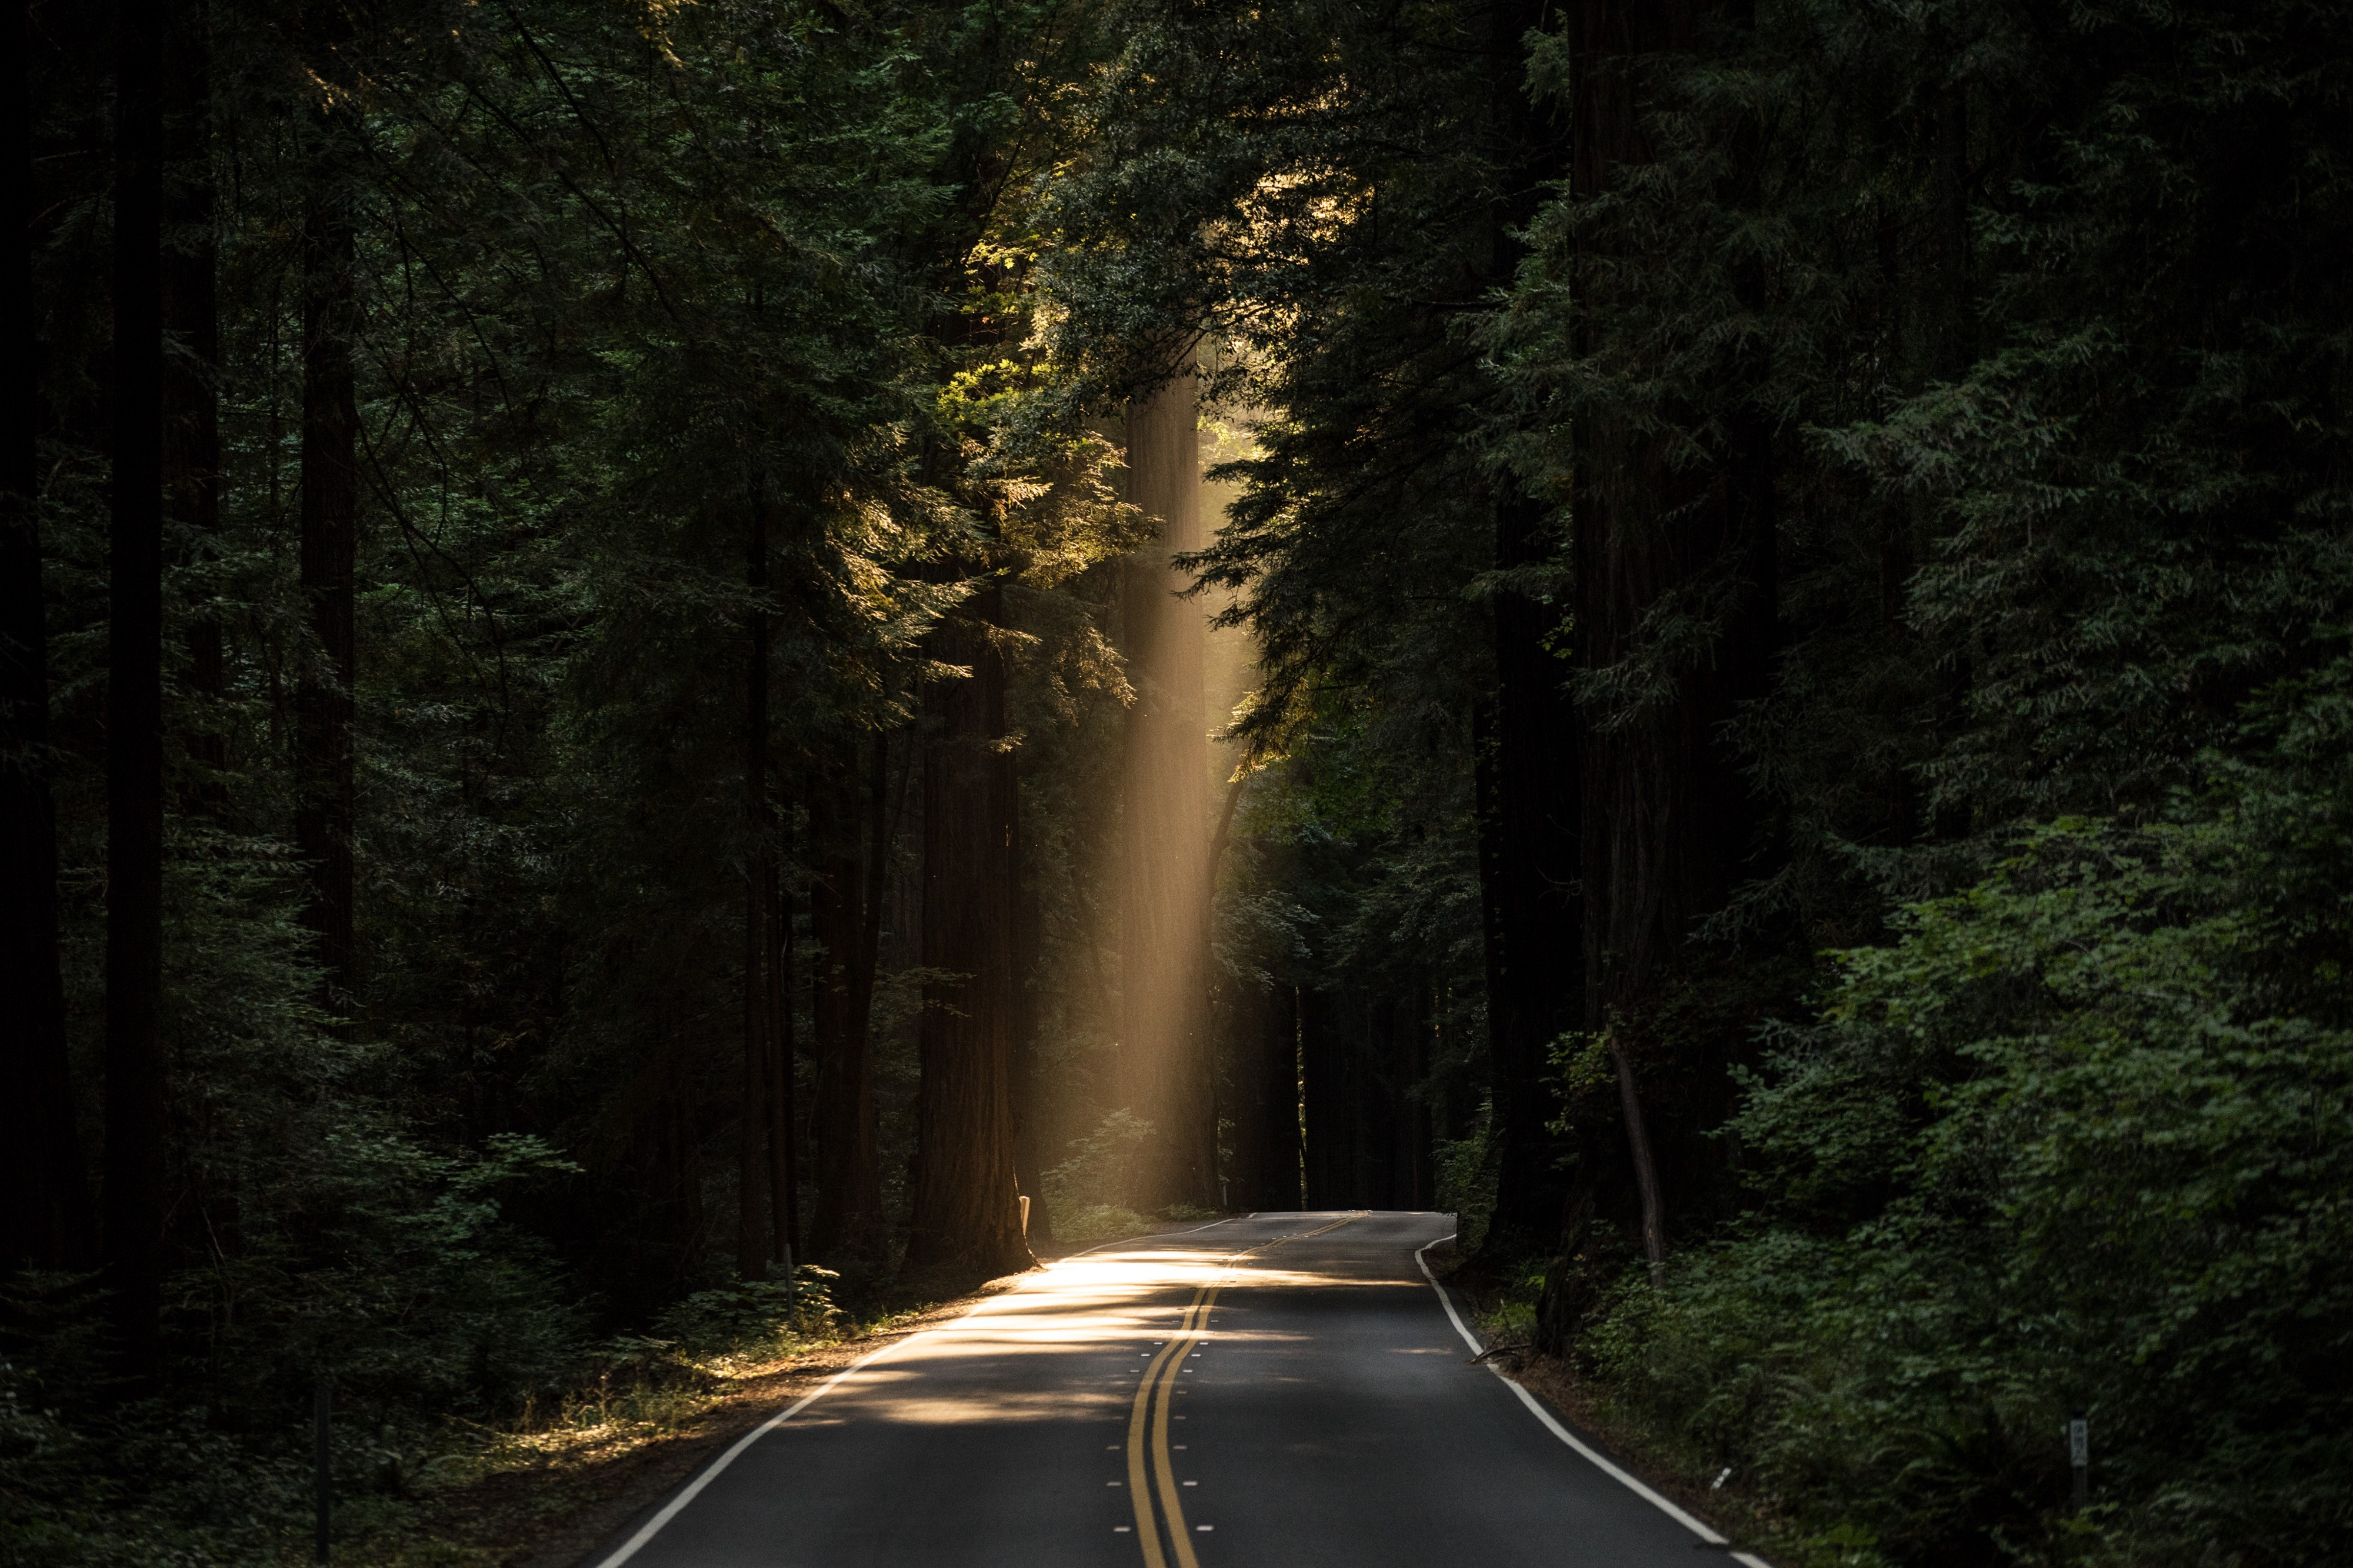 A road in a forest with a single beam of sunlight breaking through the trees